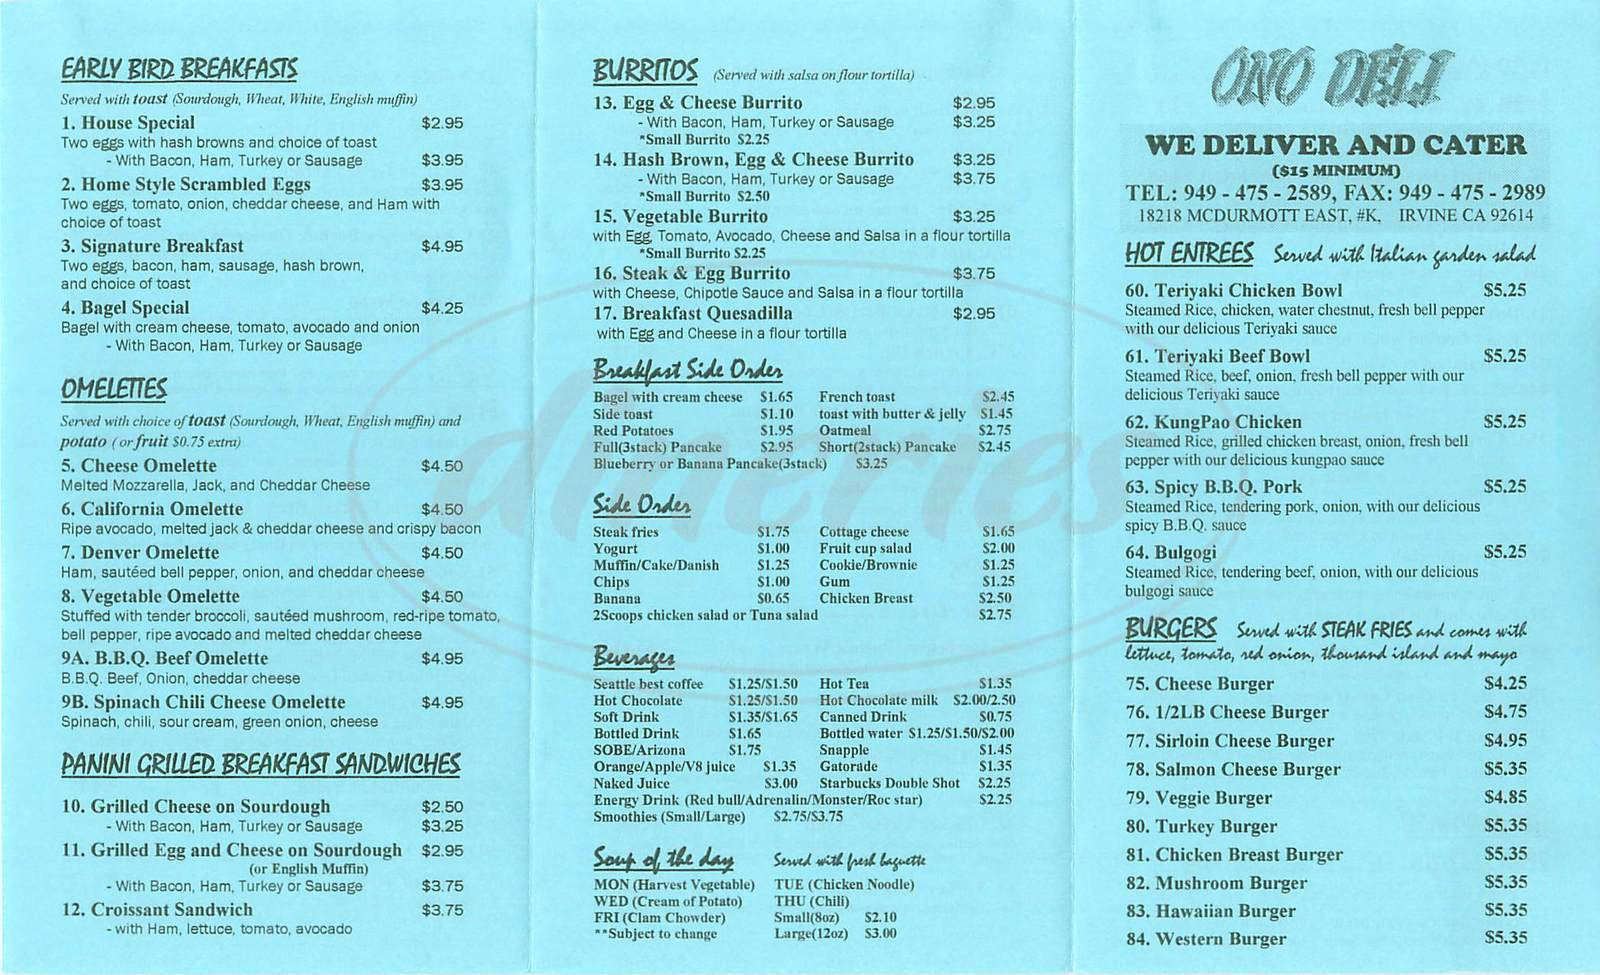 menu for Ono Café & Deli